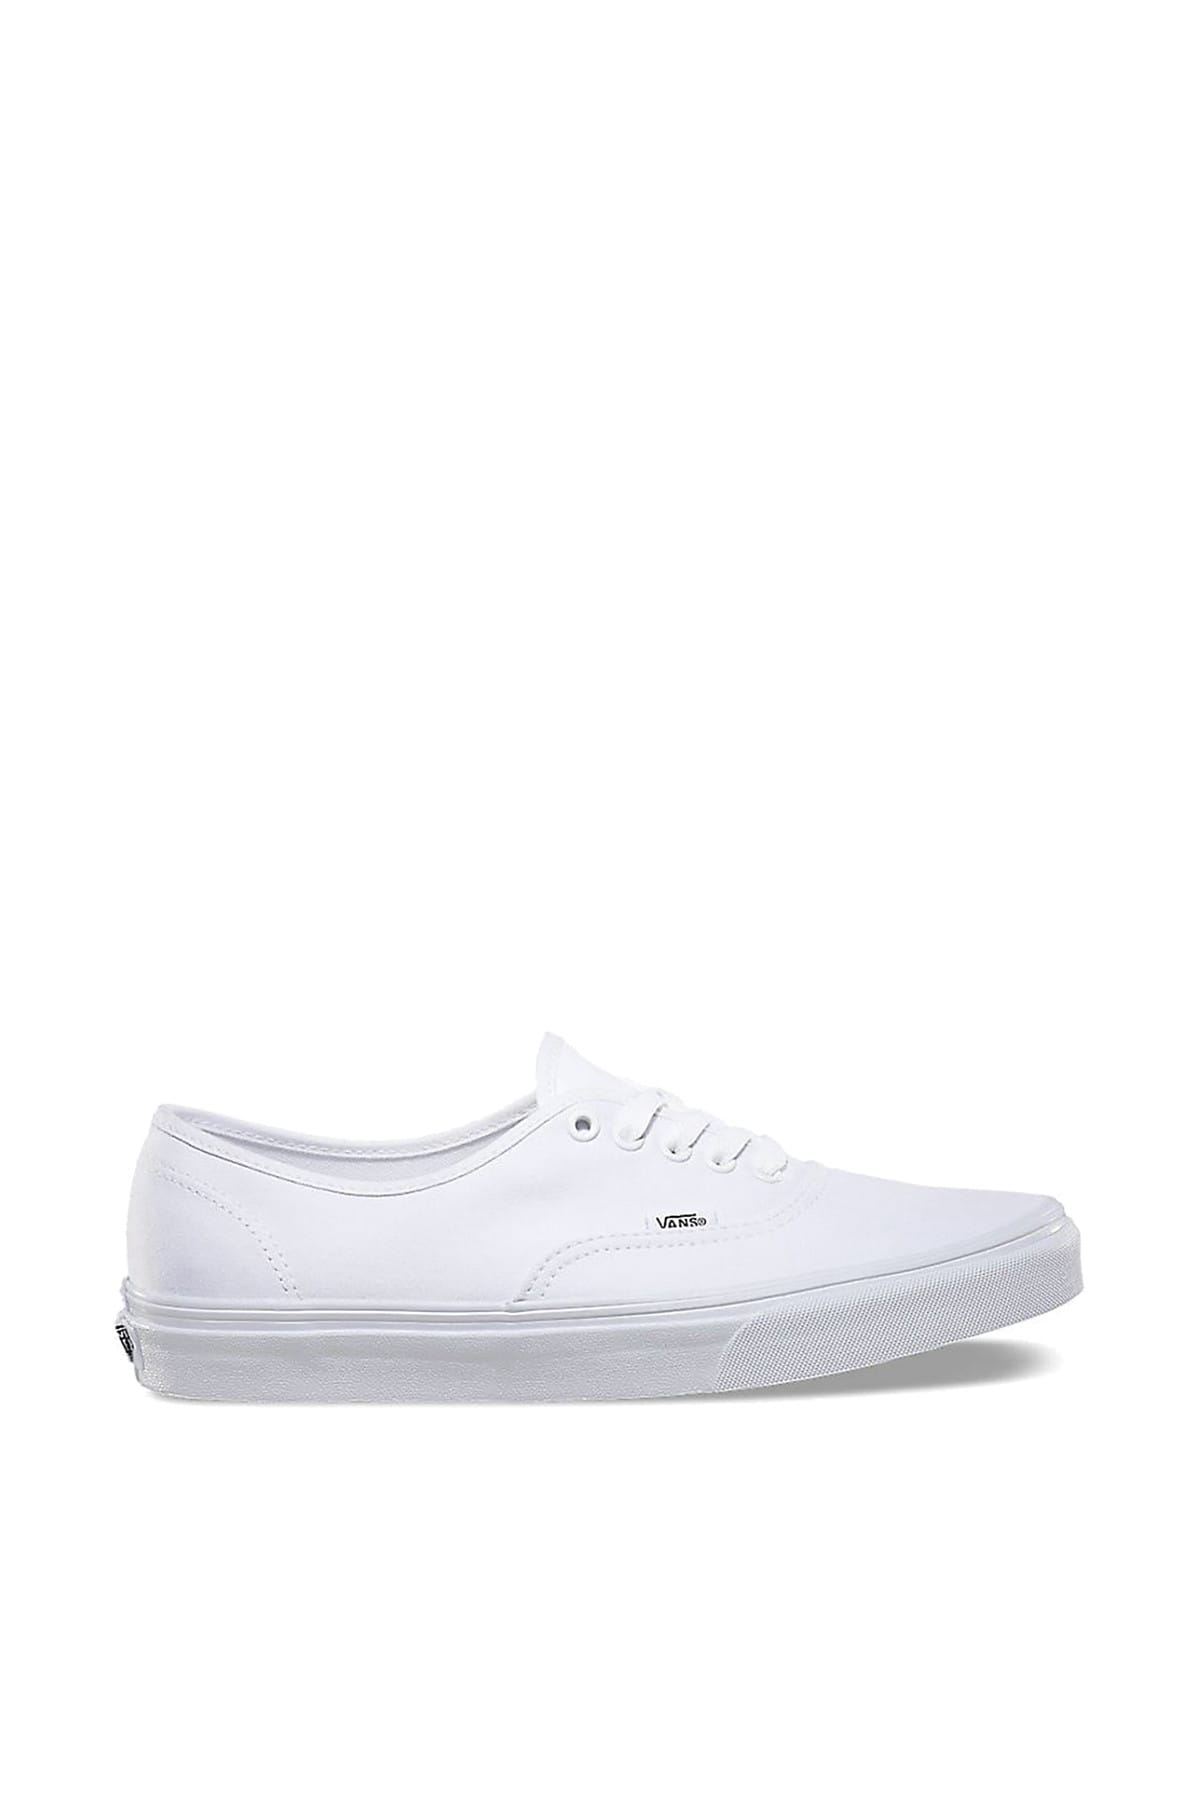 Vans Unisex Sneaker – Authentic Vee3w00 – 264.99 TL